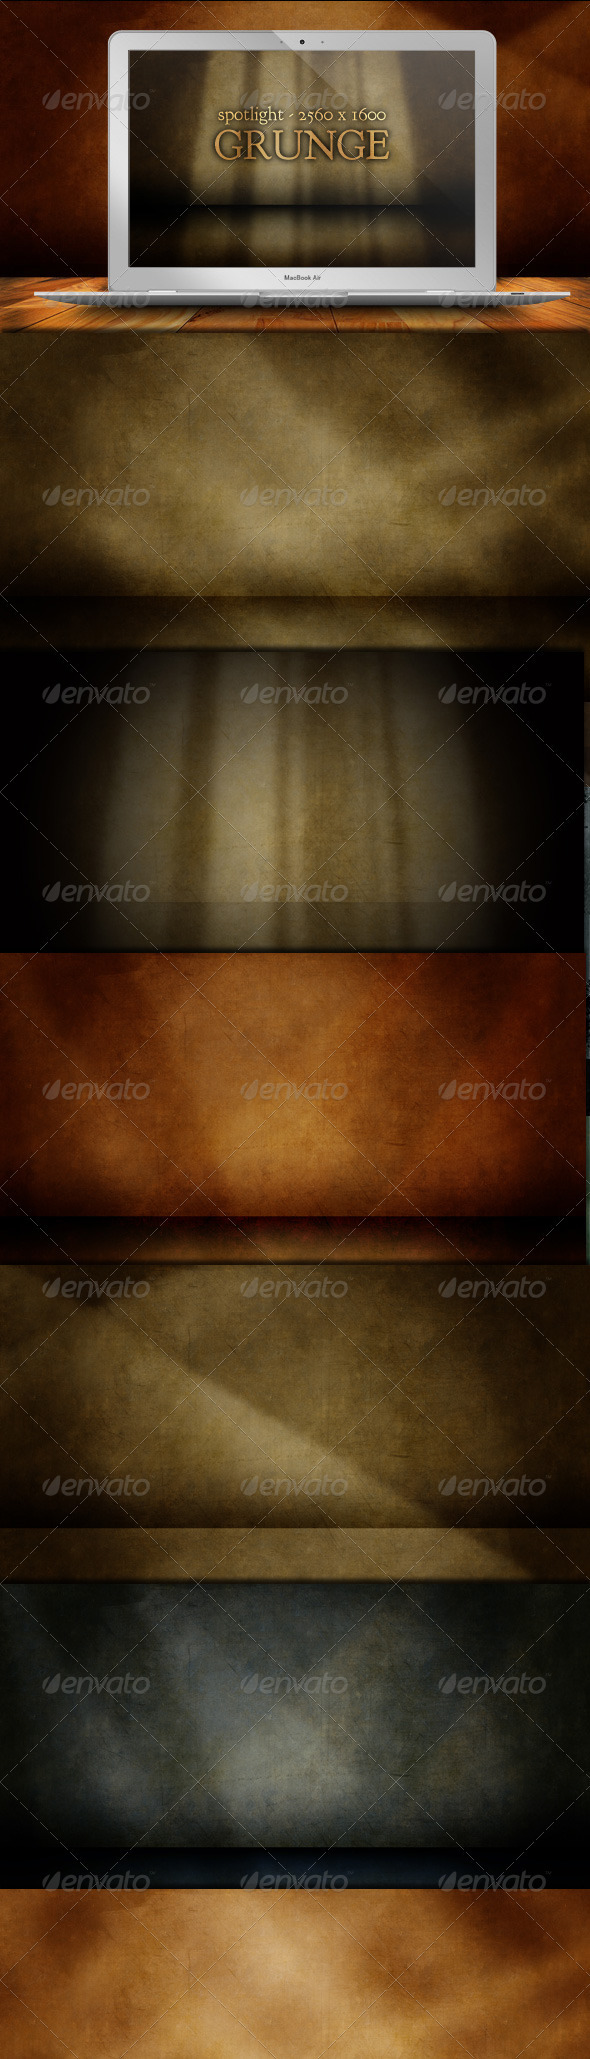 25 Grunge Spotlight Backgrounds - Backgrounds Graphics